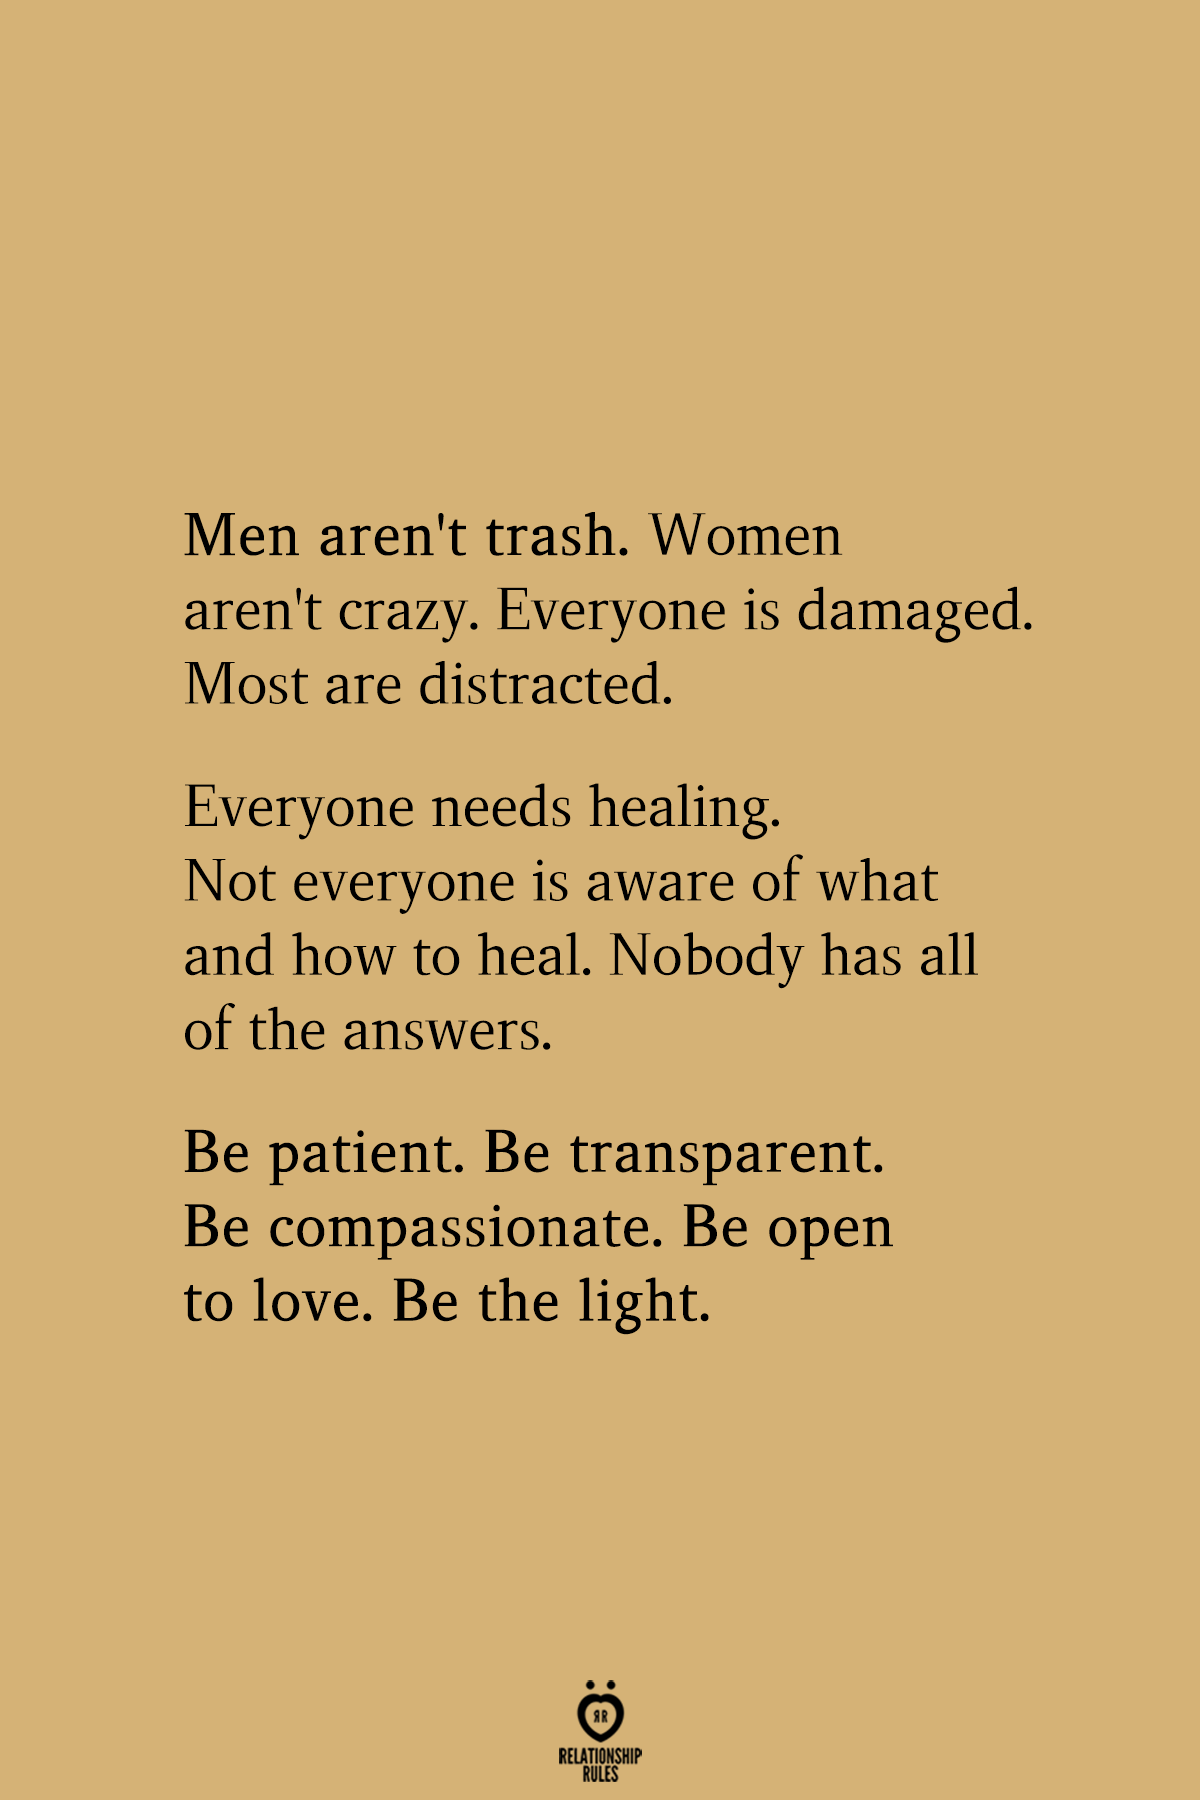 Men Aren't Trash. Women Aren't Crazy. Everyone Is Damaged. Most Are Distracted – Life Quotes